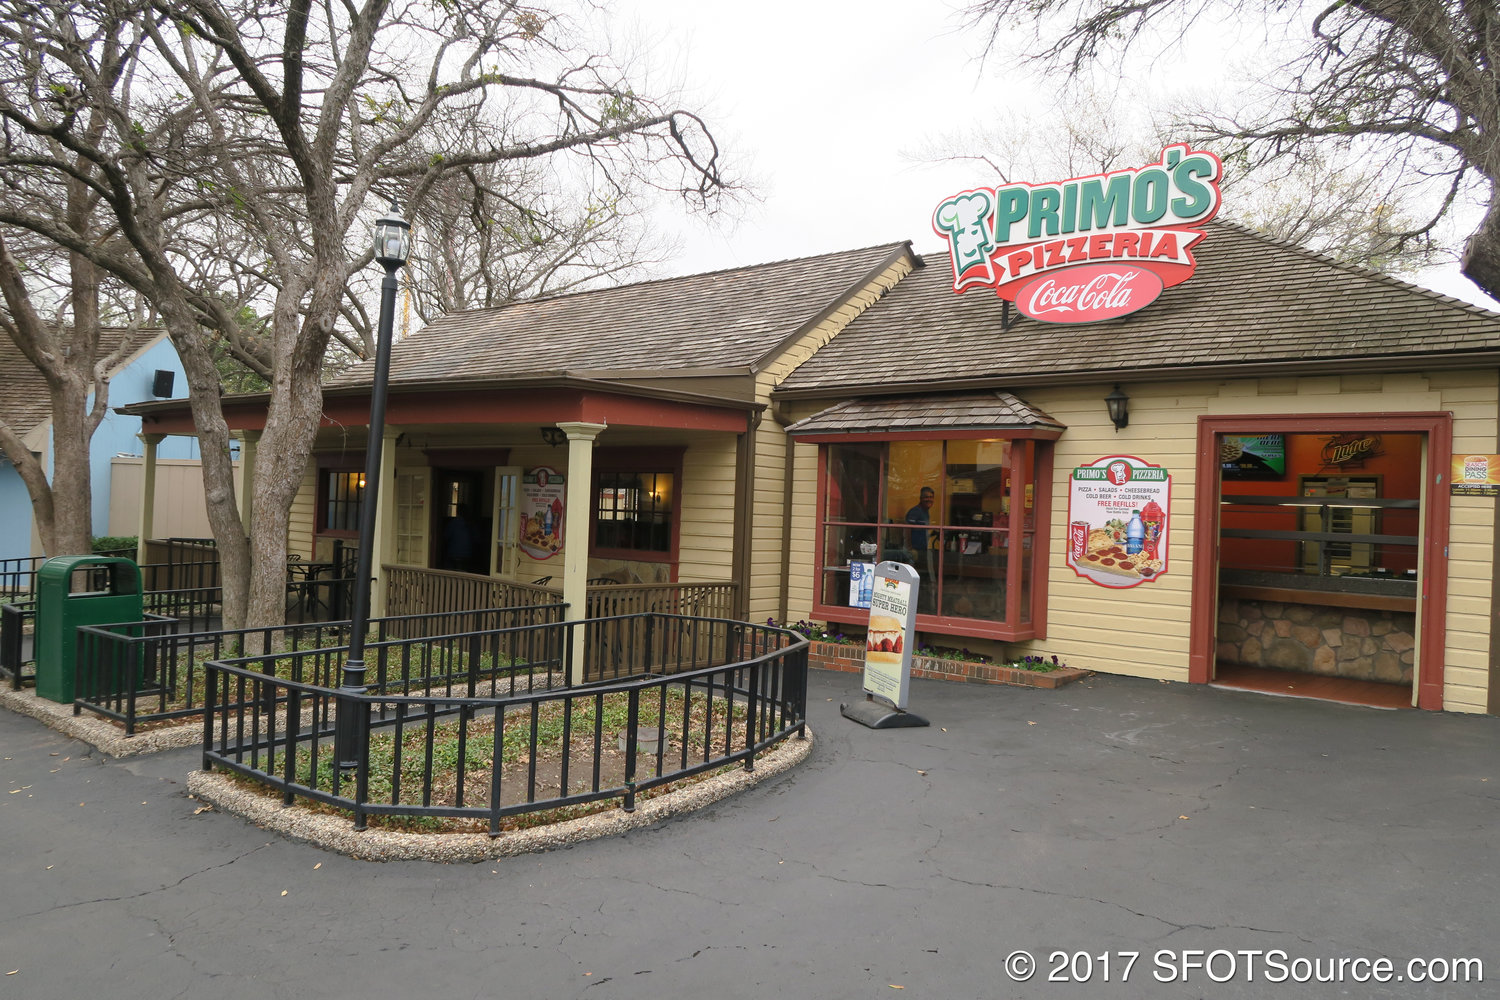 Primo's Pizzeria is located in the park's Old South section.